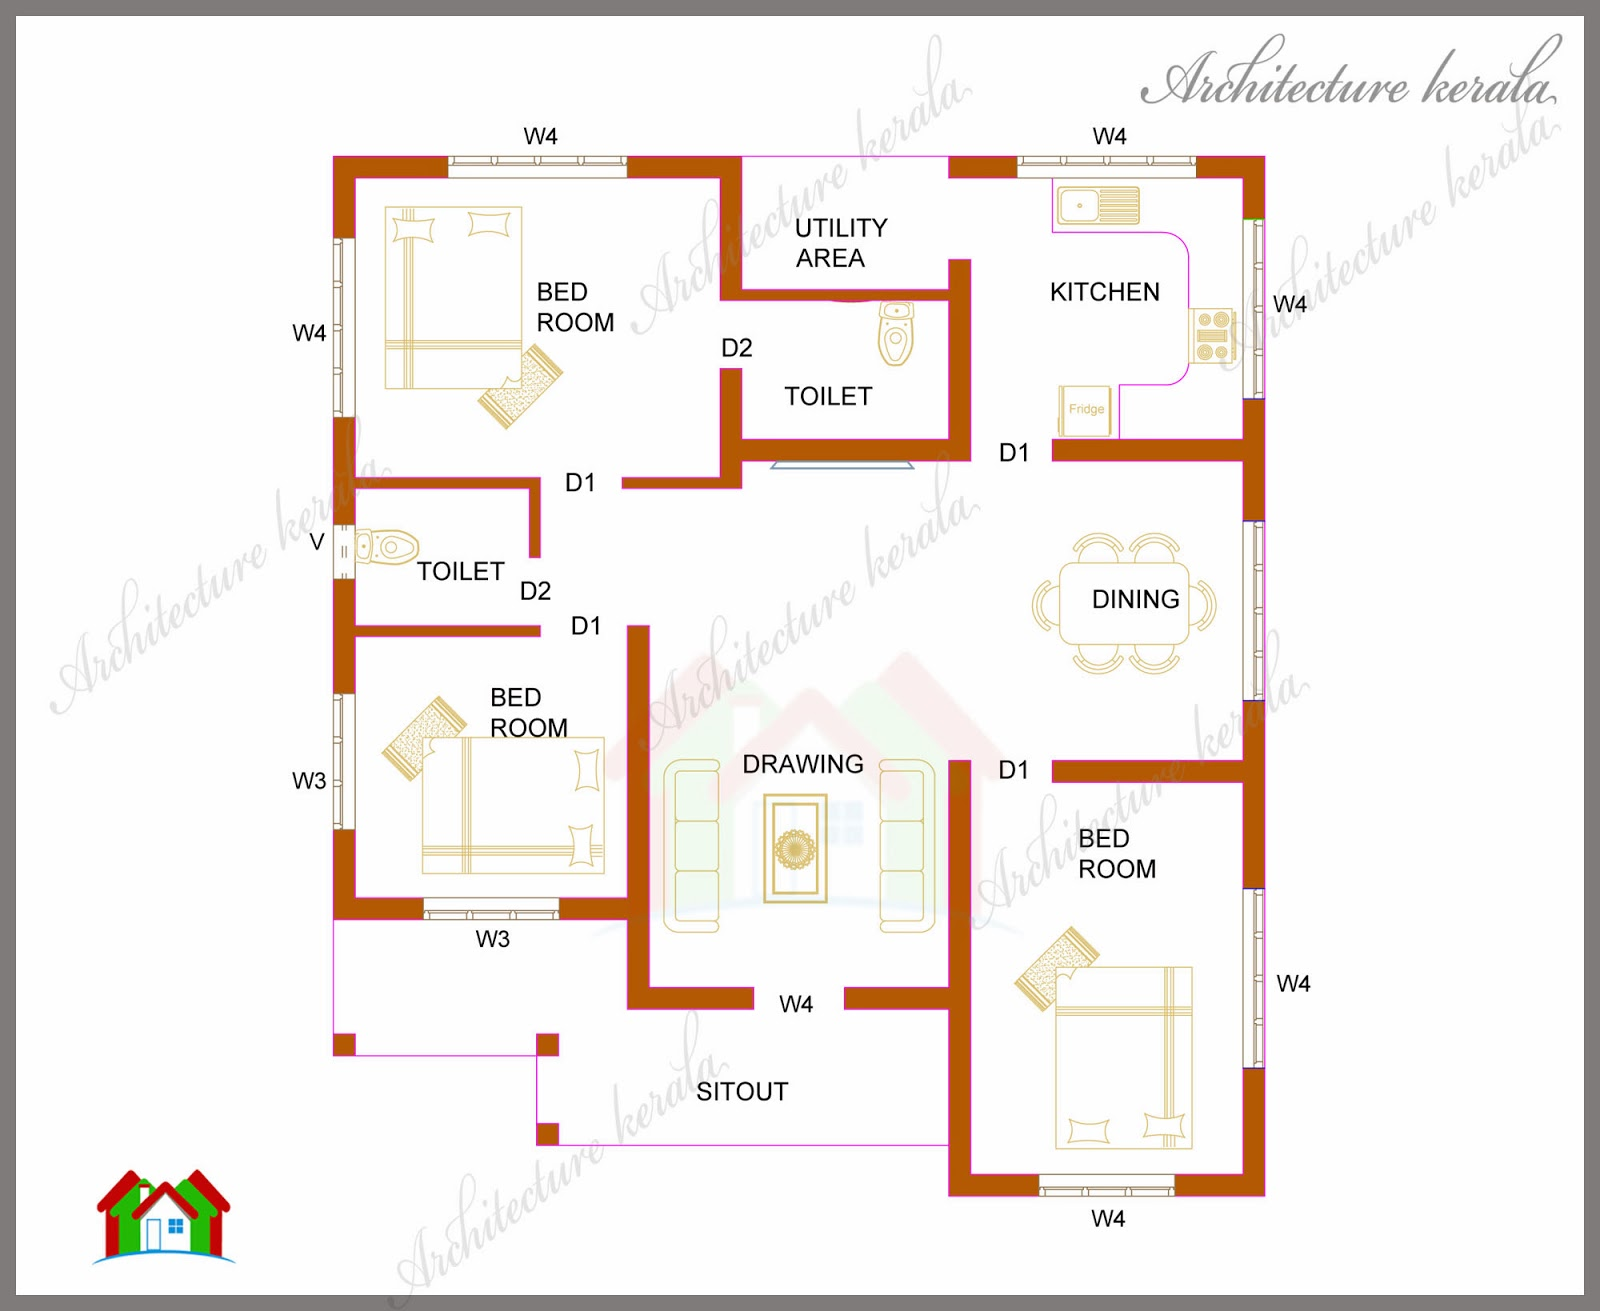 Three bedrooms in 1200 square feet kerala house plan House plans 1200 square feet